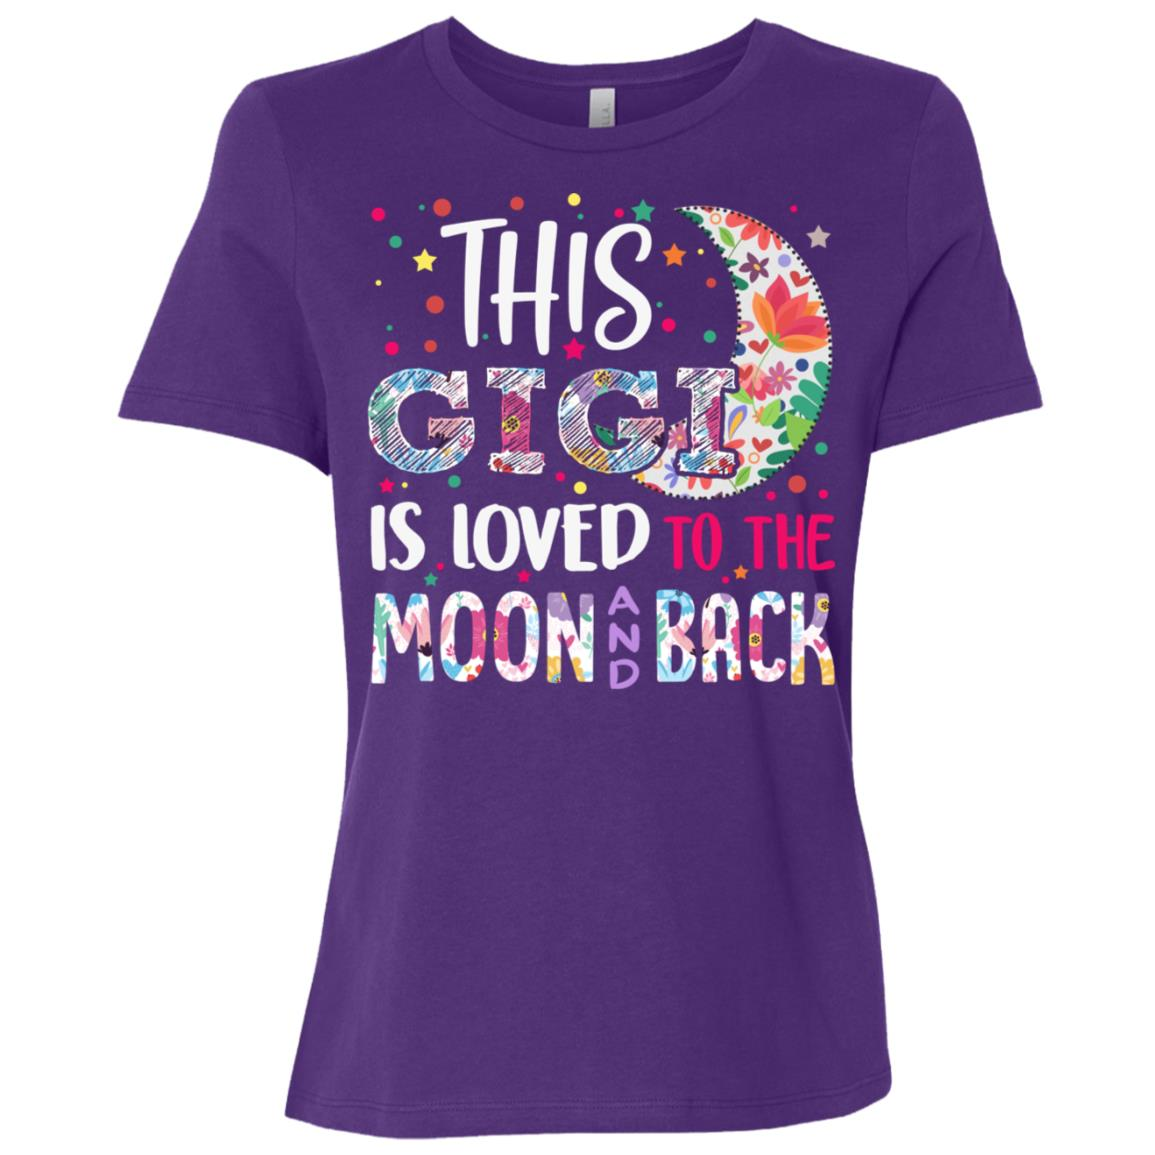 This Gigi is loved to the moon and back Women Short Sleeve T-Shirt